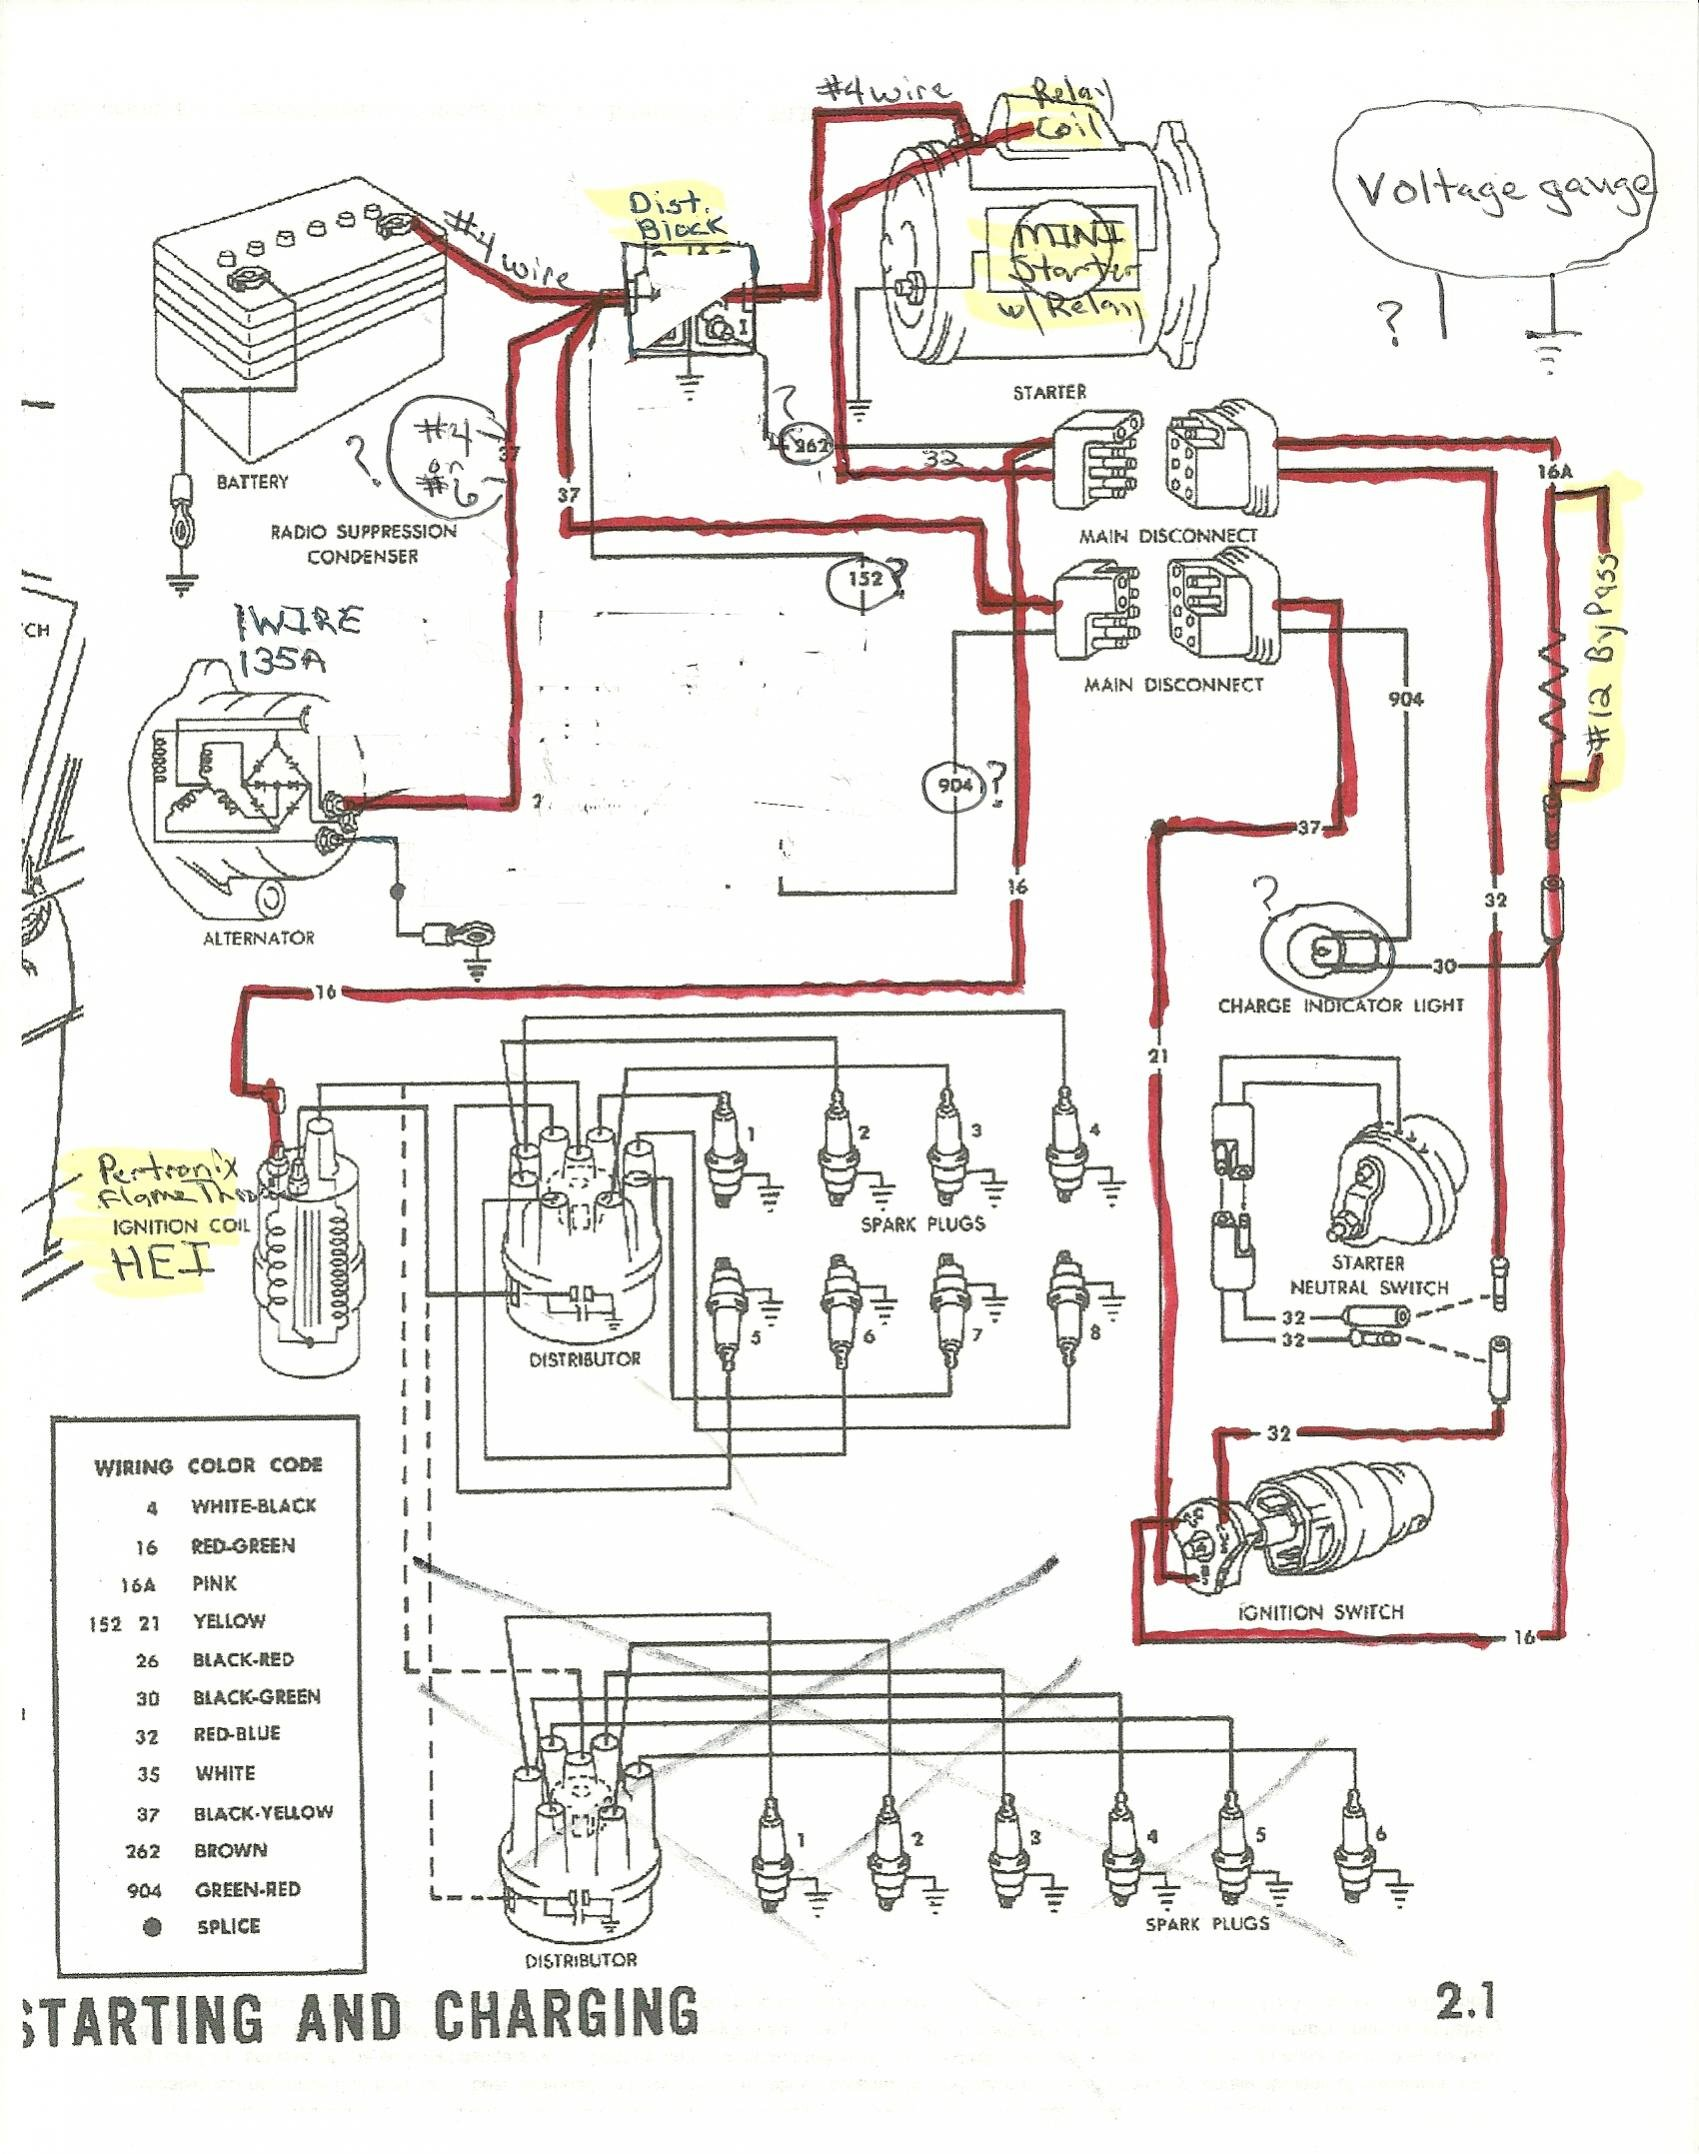 hight resolution of dodge alternator wiring 1965 wiring diagram schematics ford mustang voltage regulator wiring diagram 2002 ford mustang alternator wiring diagram